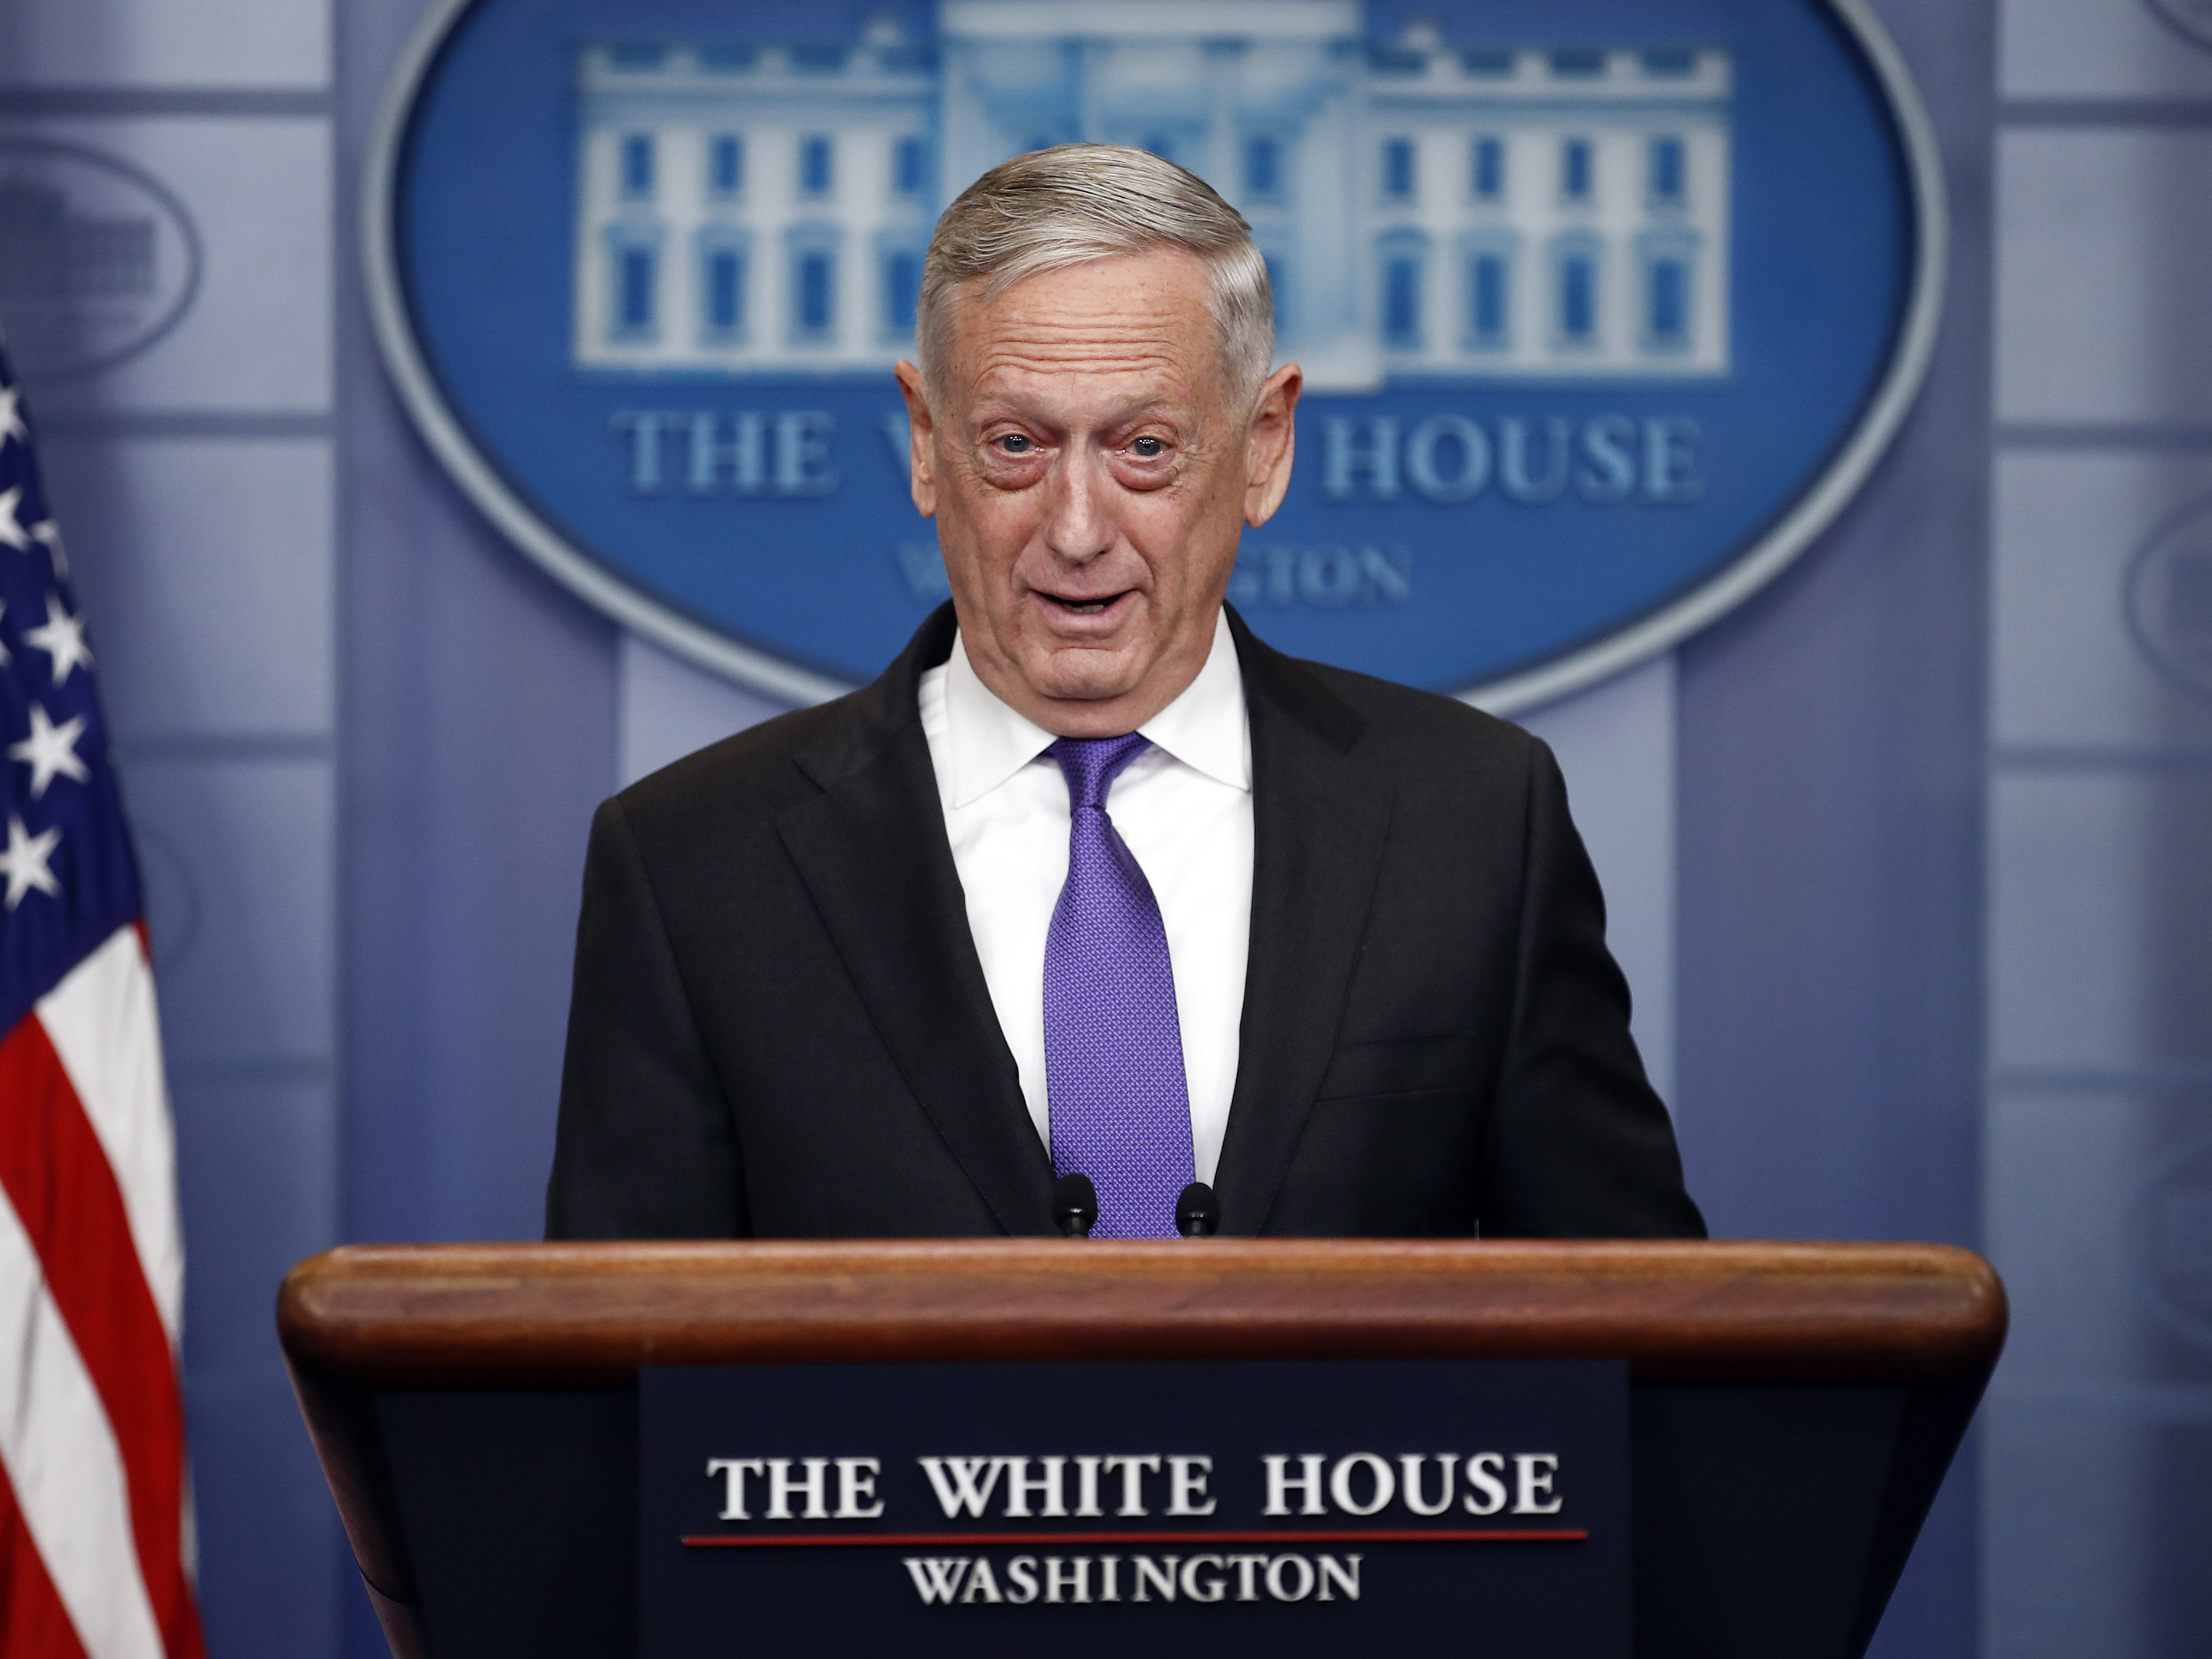 Defense Secretary Jim Mattis pictured speaking at the White House Wednesday. He said Thursday that